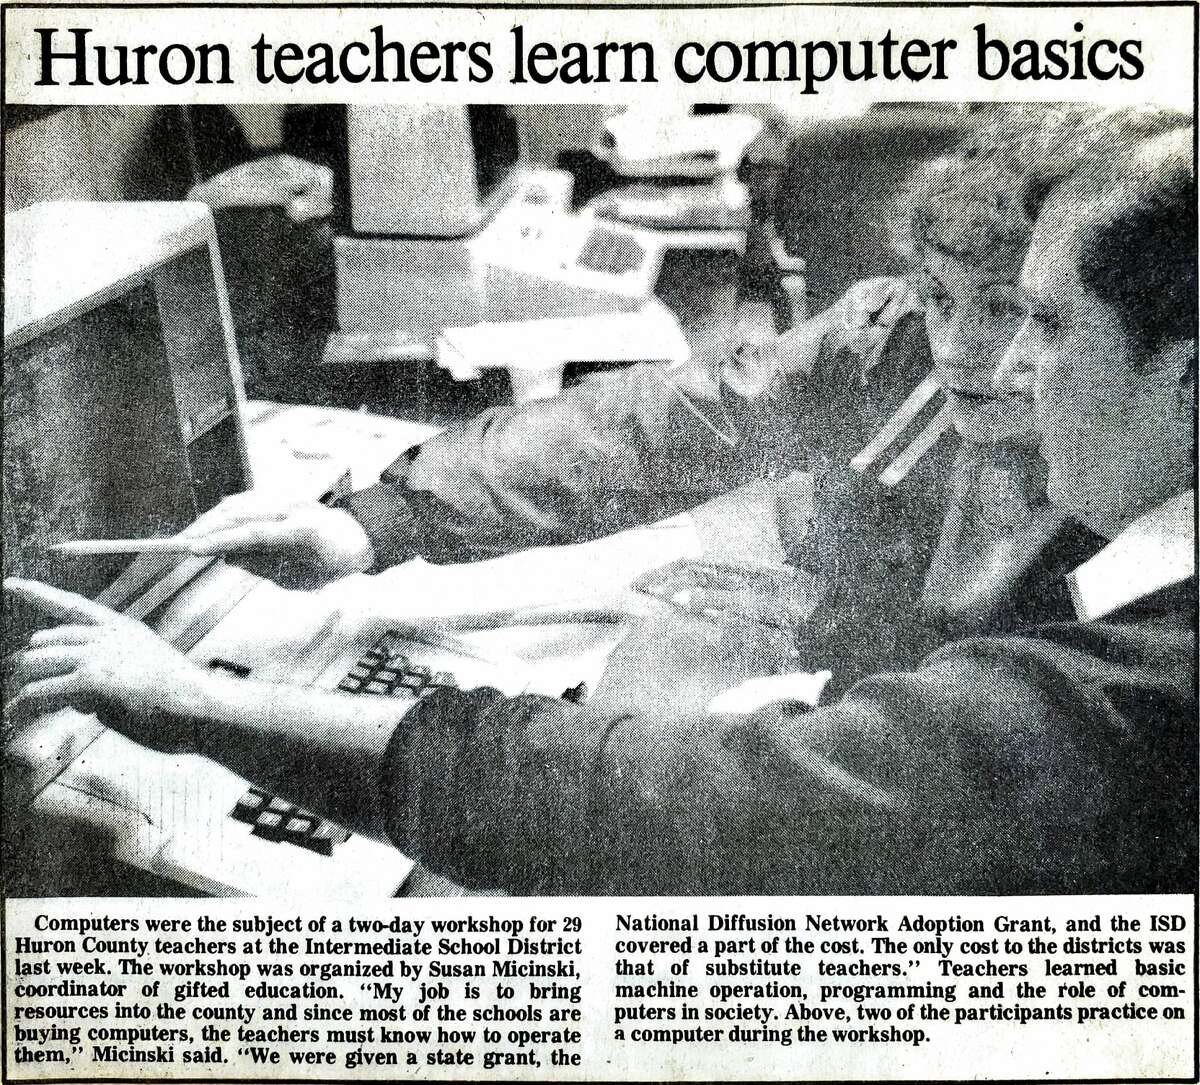 For this week's Tribune Throwback we take a look in the archives from April 1983.